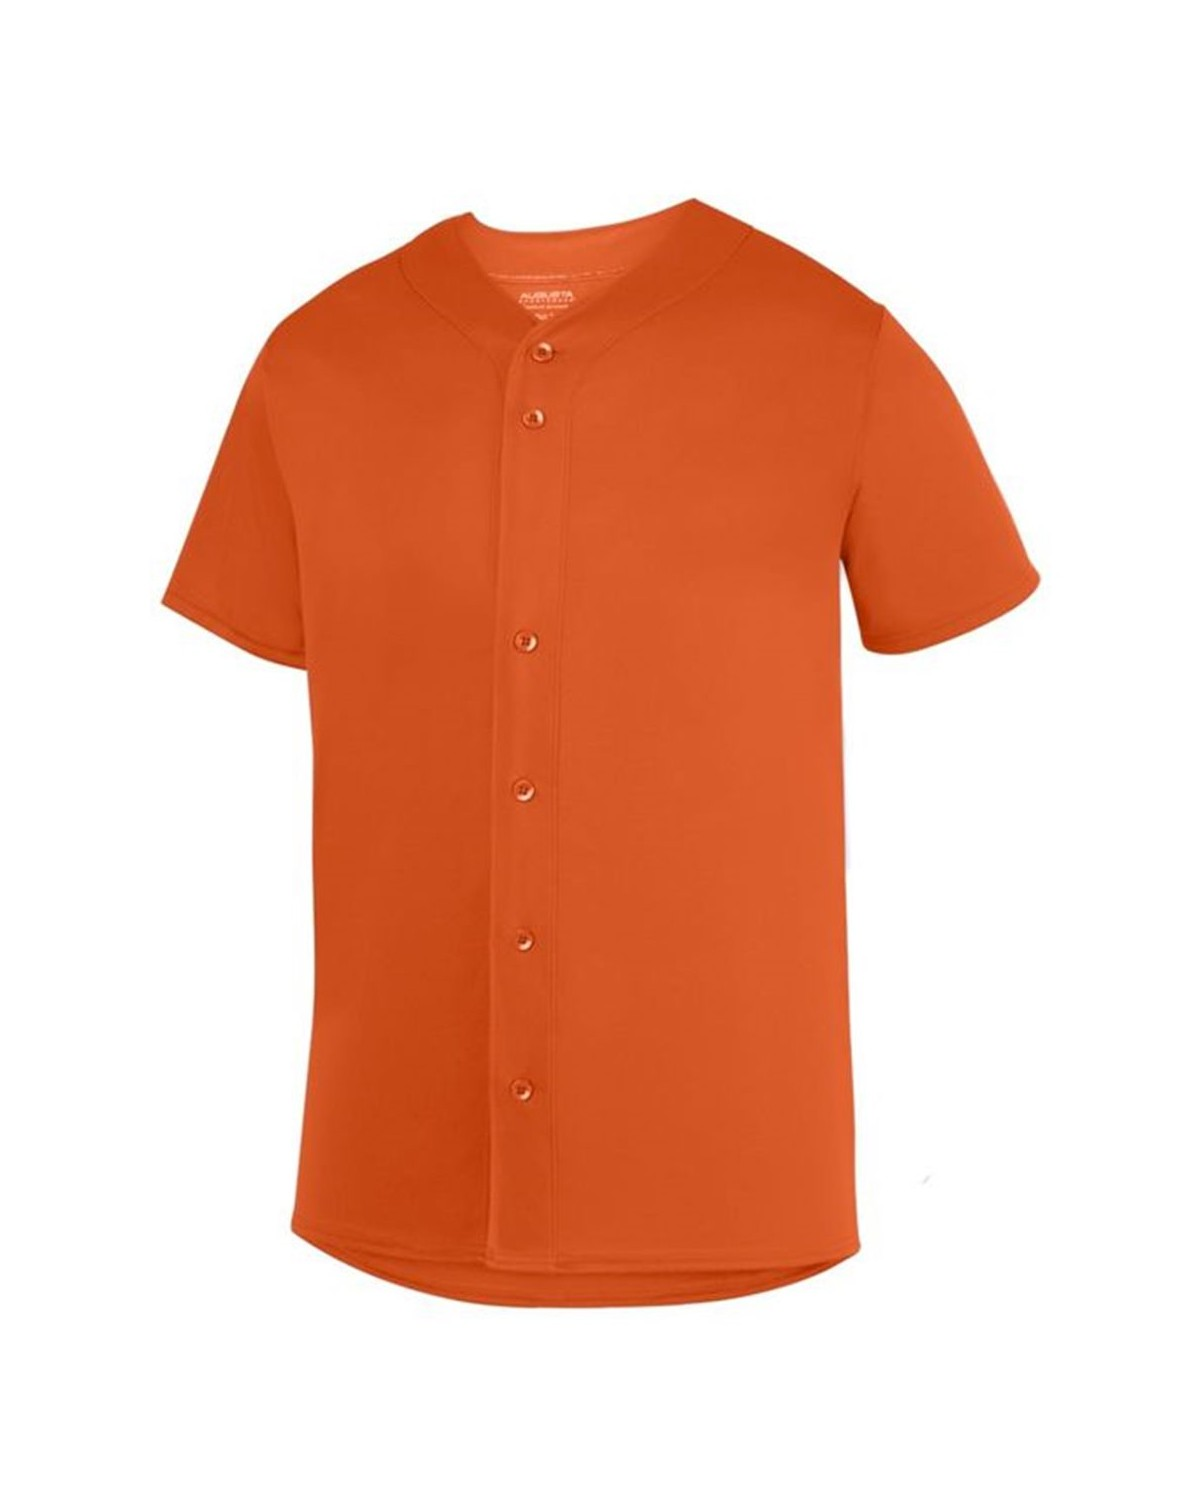 LA6137 LAT Apparel Vintage Orange/Blended White